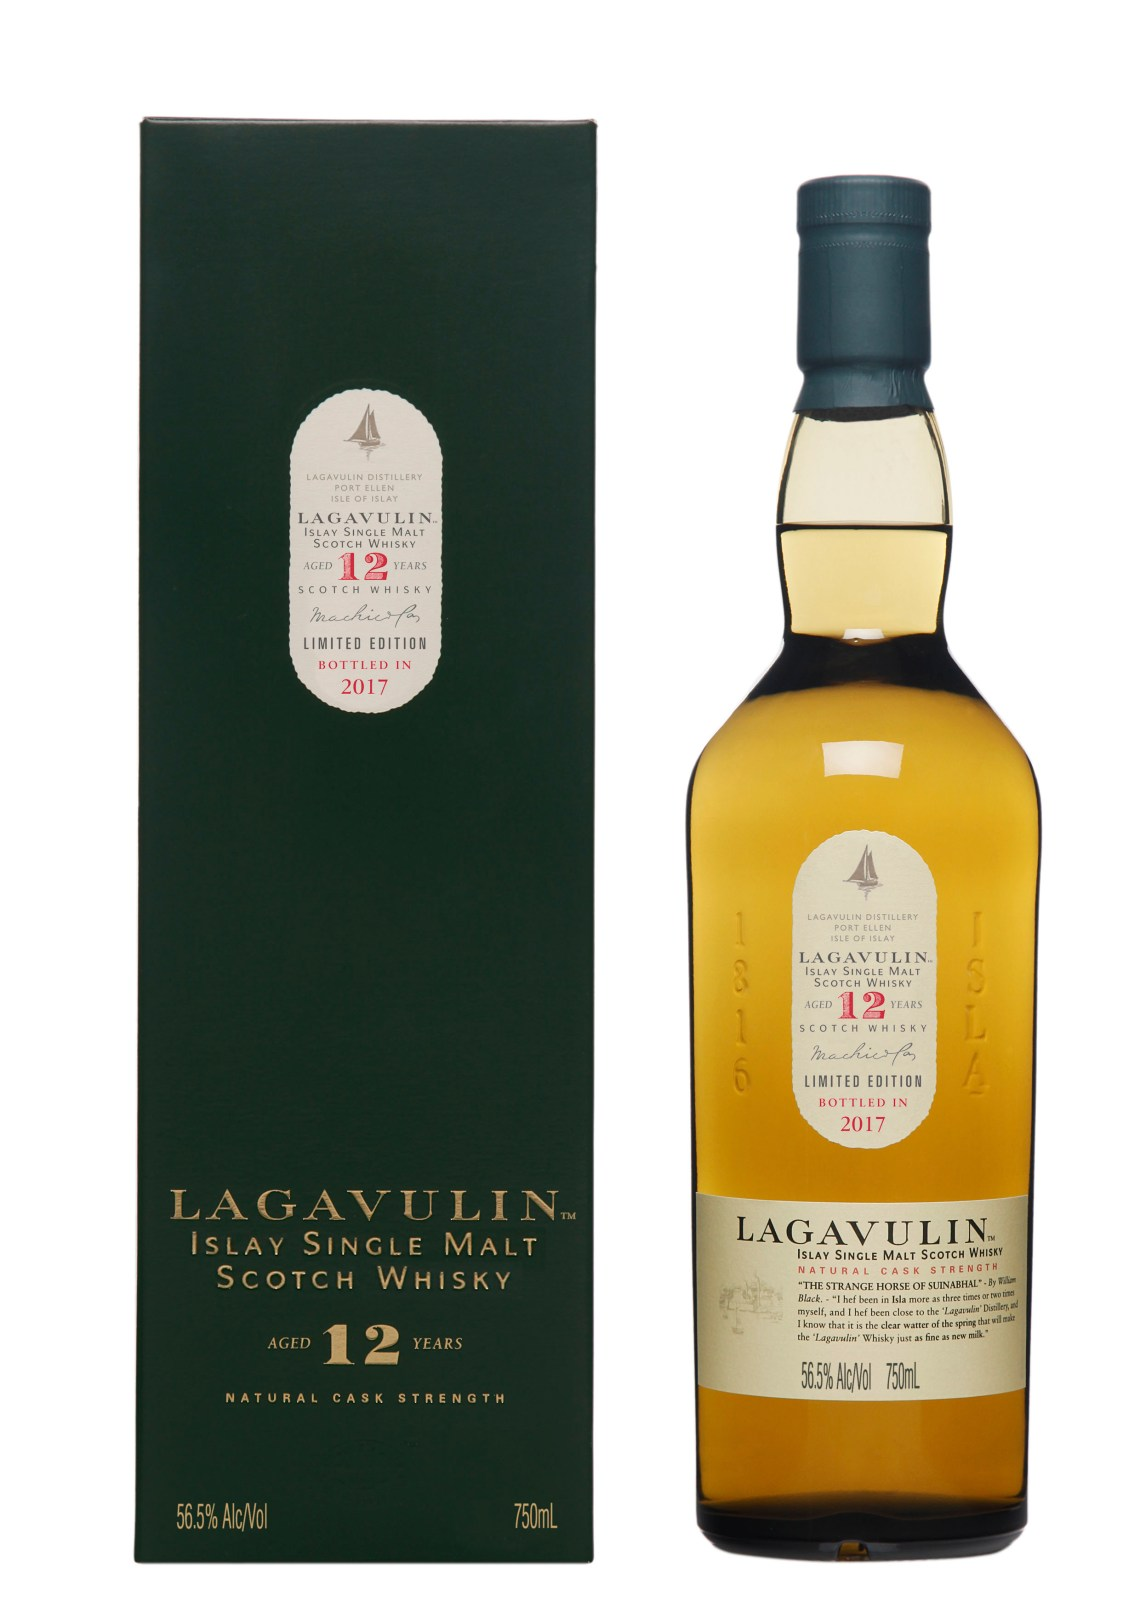 Lagavulin 12 Years Old Limited Edition 2017